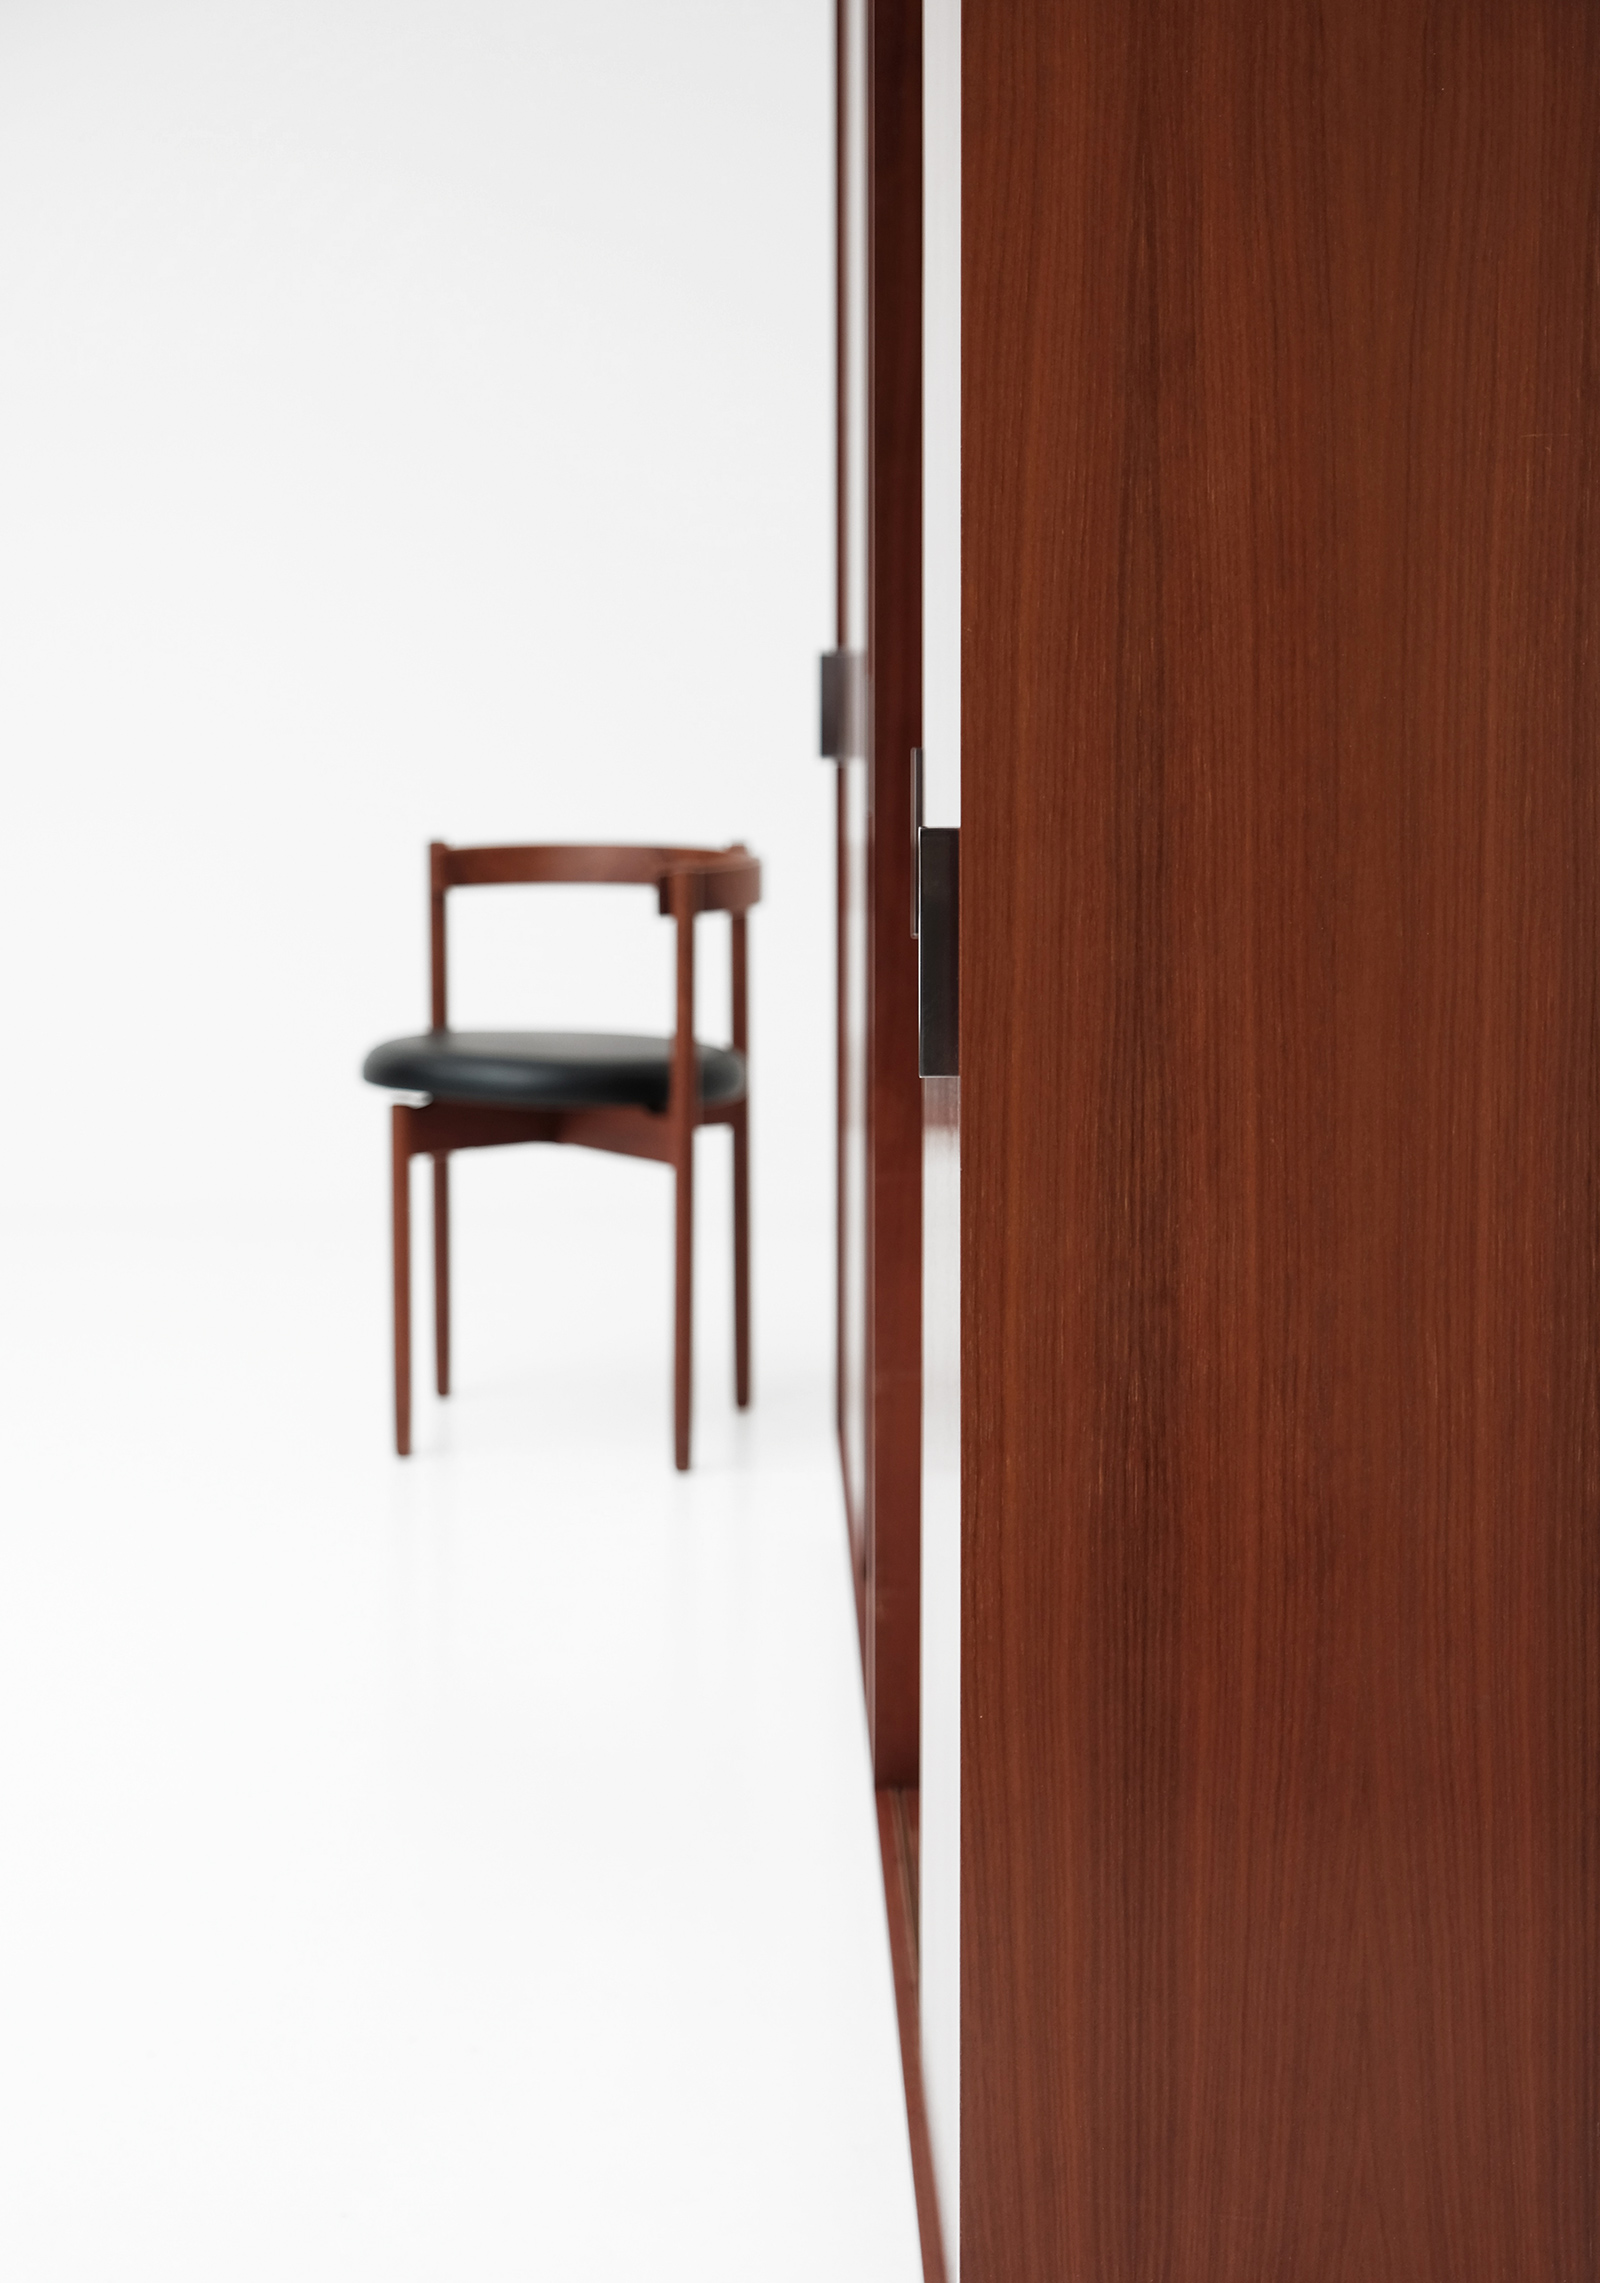 Alfred Hendrickx Wardrobe with Sliding Doorsimage 6